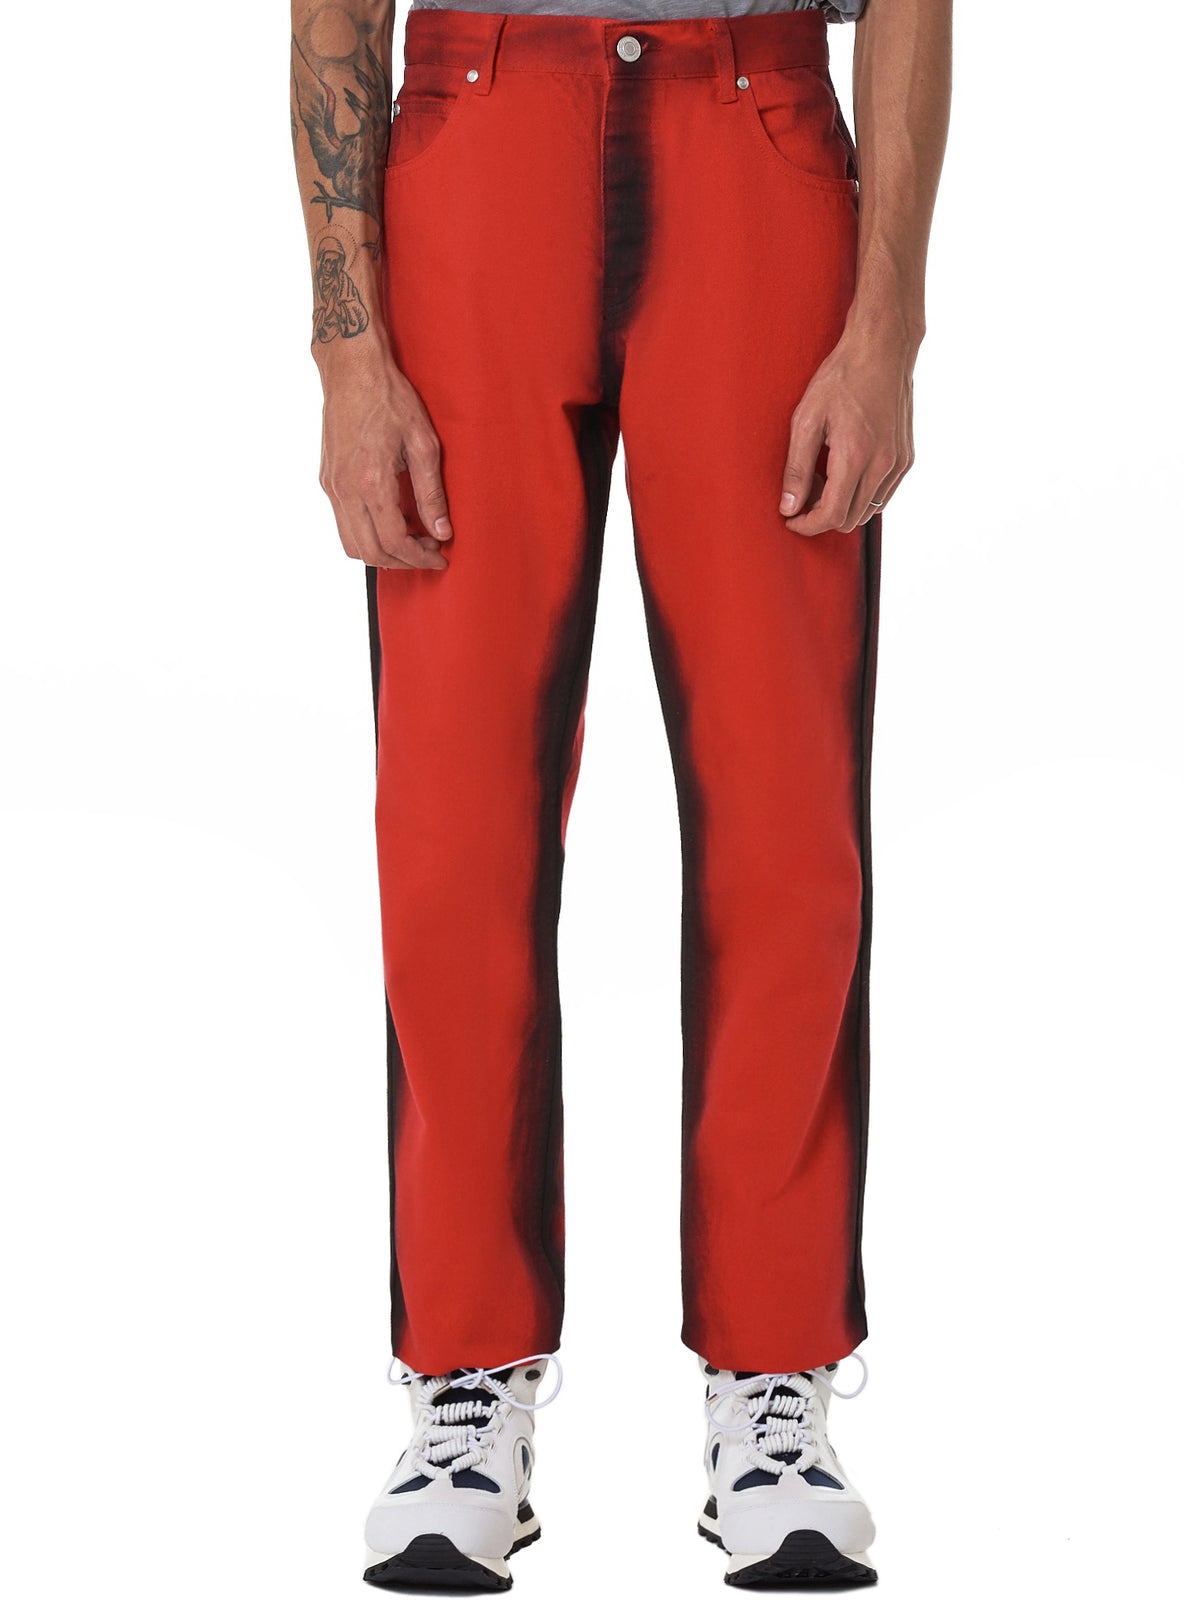 Martine Rose Red Jeans - Hlorenzo Front